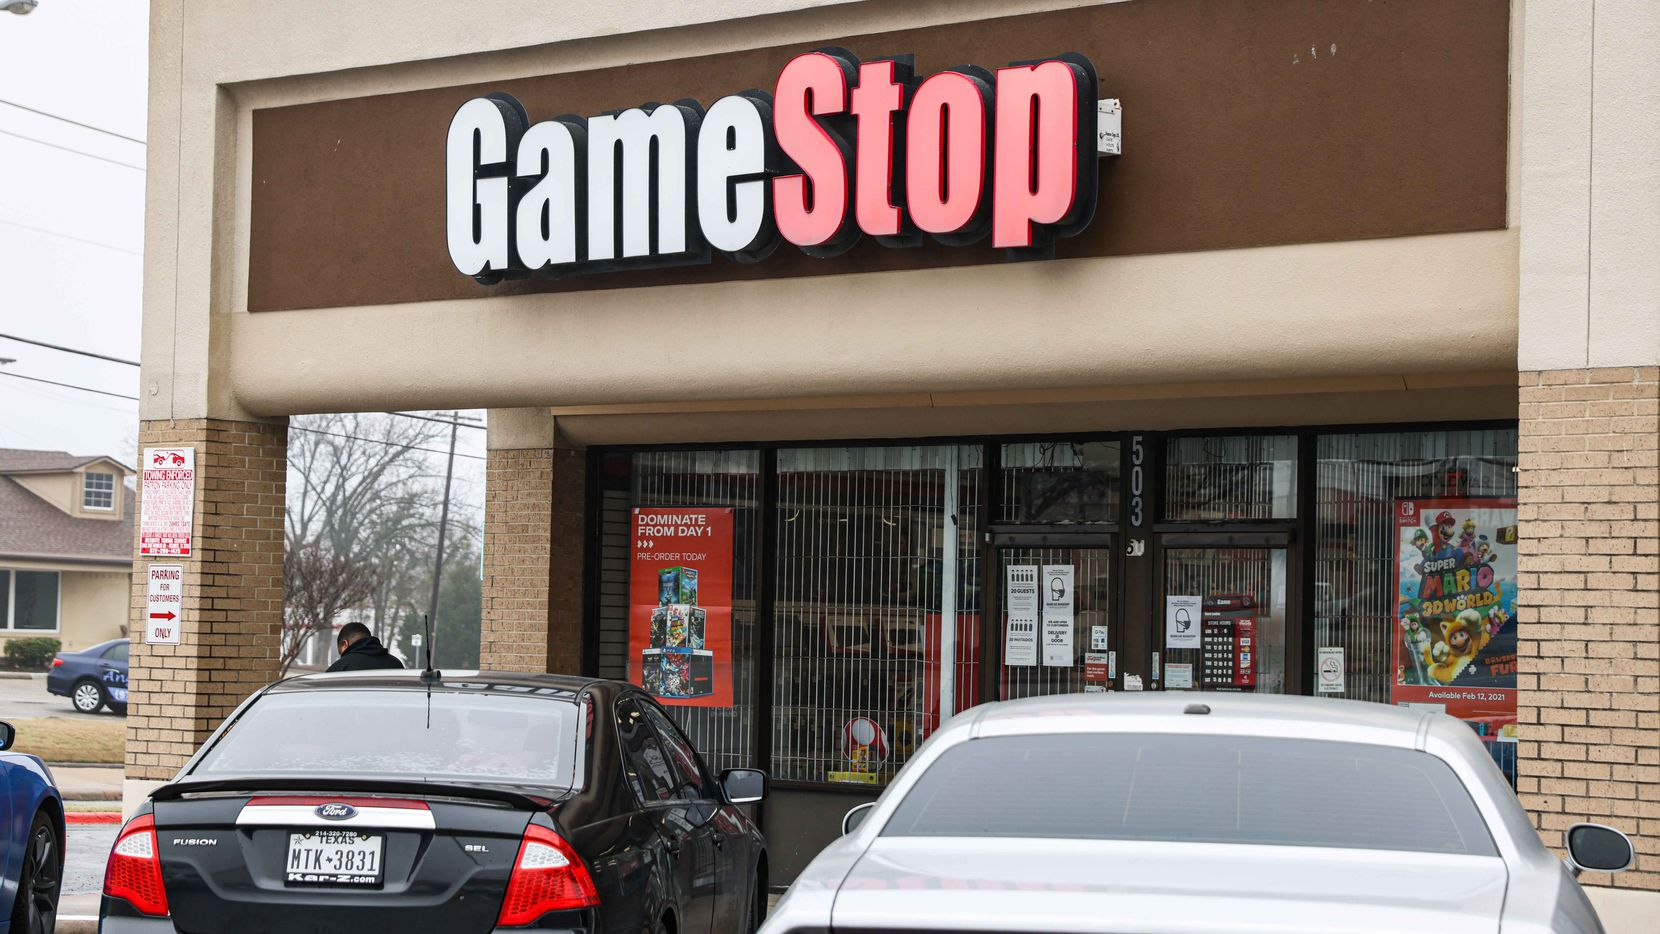 A GameStop location on North Galloway Avenue in Mesquite.